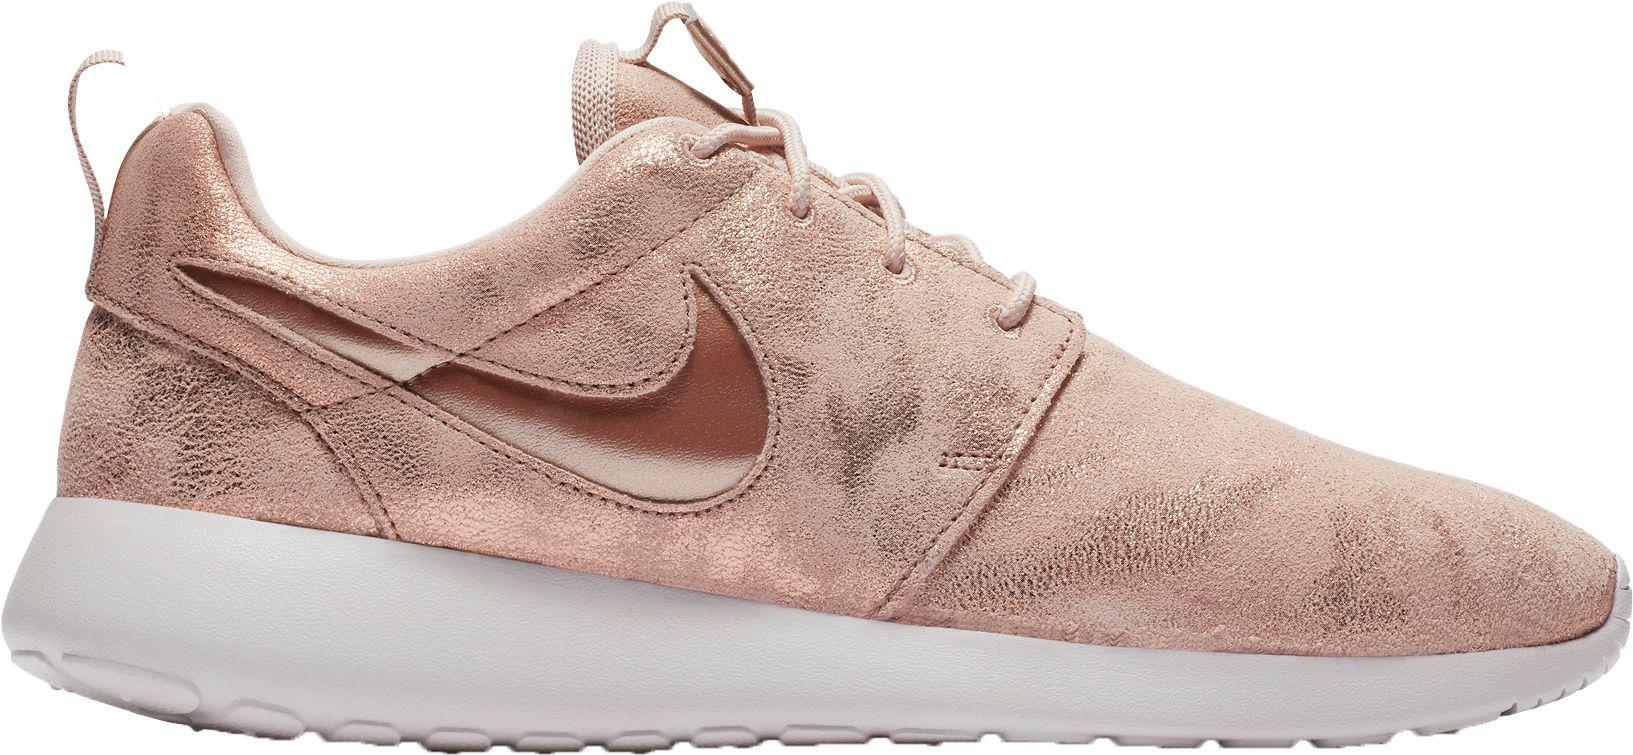 6940ba108c4b5 Nike - Multicolor Roshe One Premium Shoes - Lyst